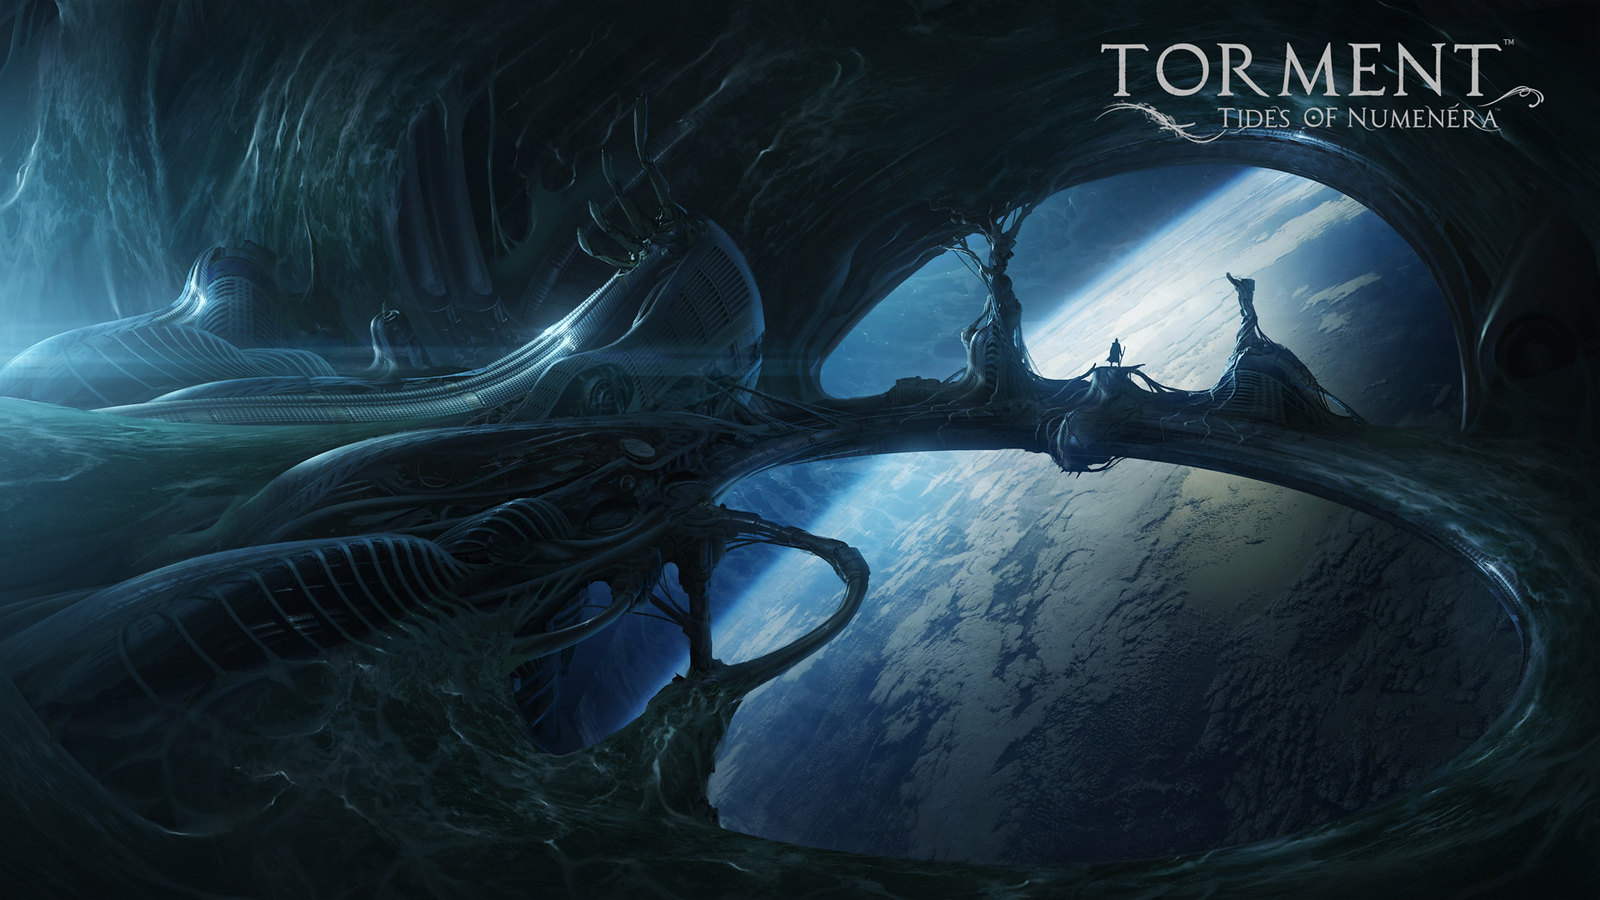 Tormento: Tides of Numenera